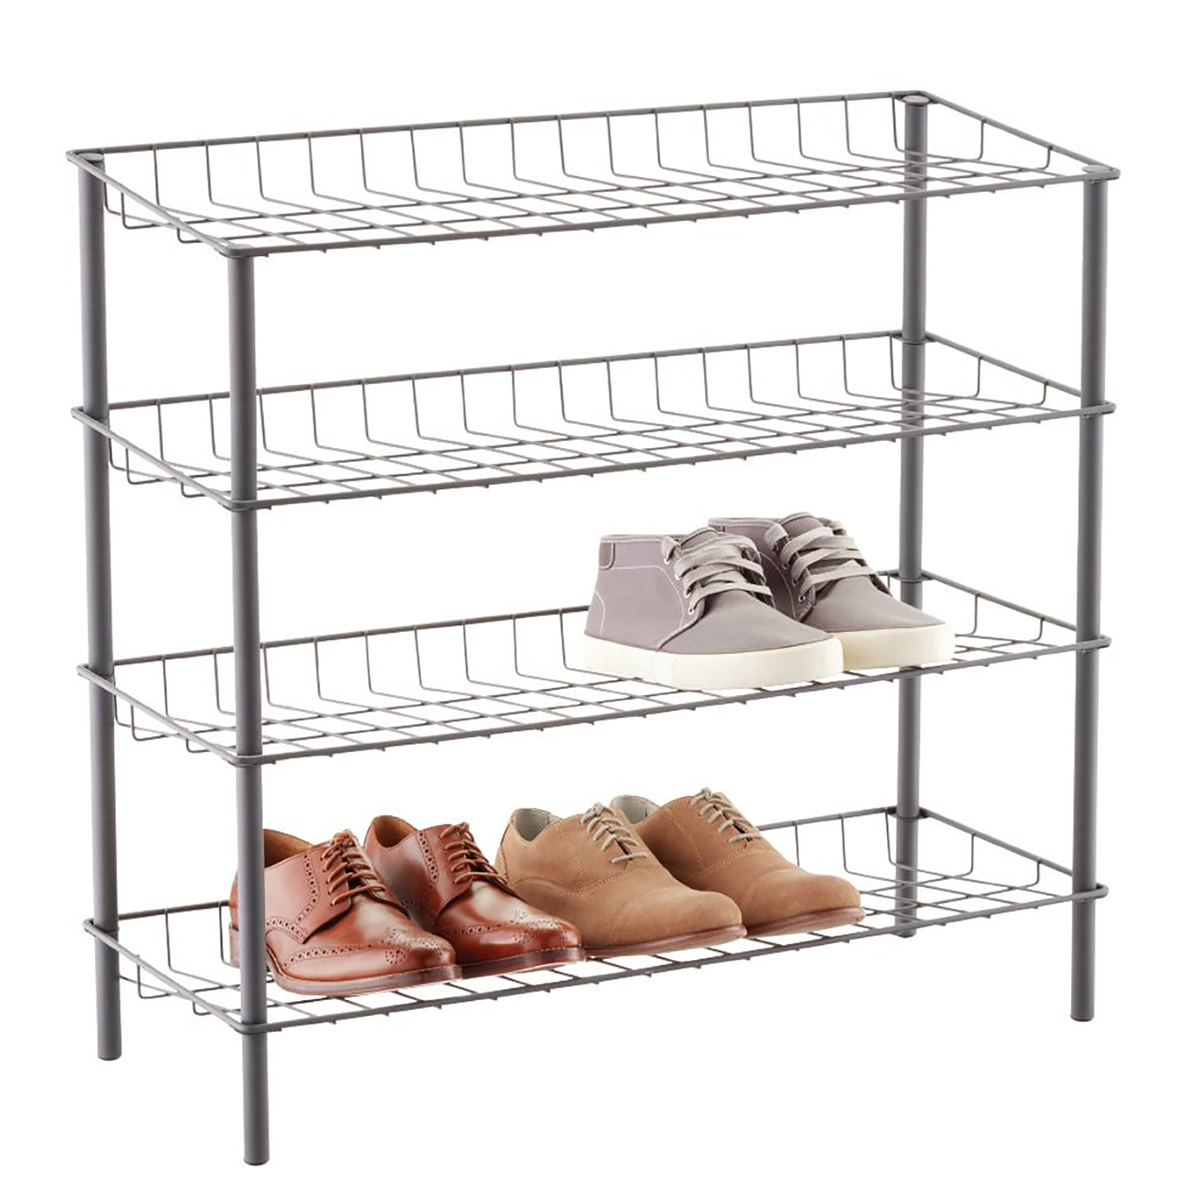 Graphite 4-Tier Metal Shoe Rack